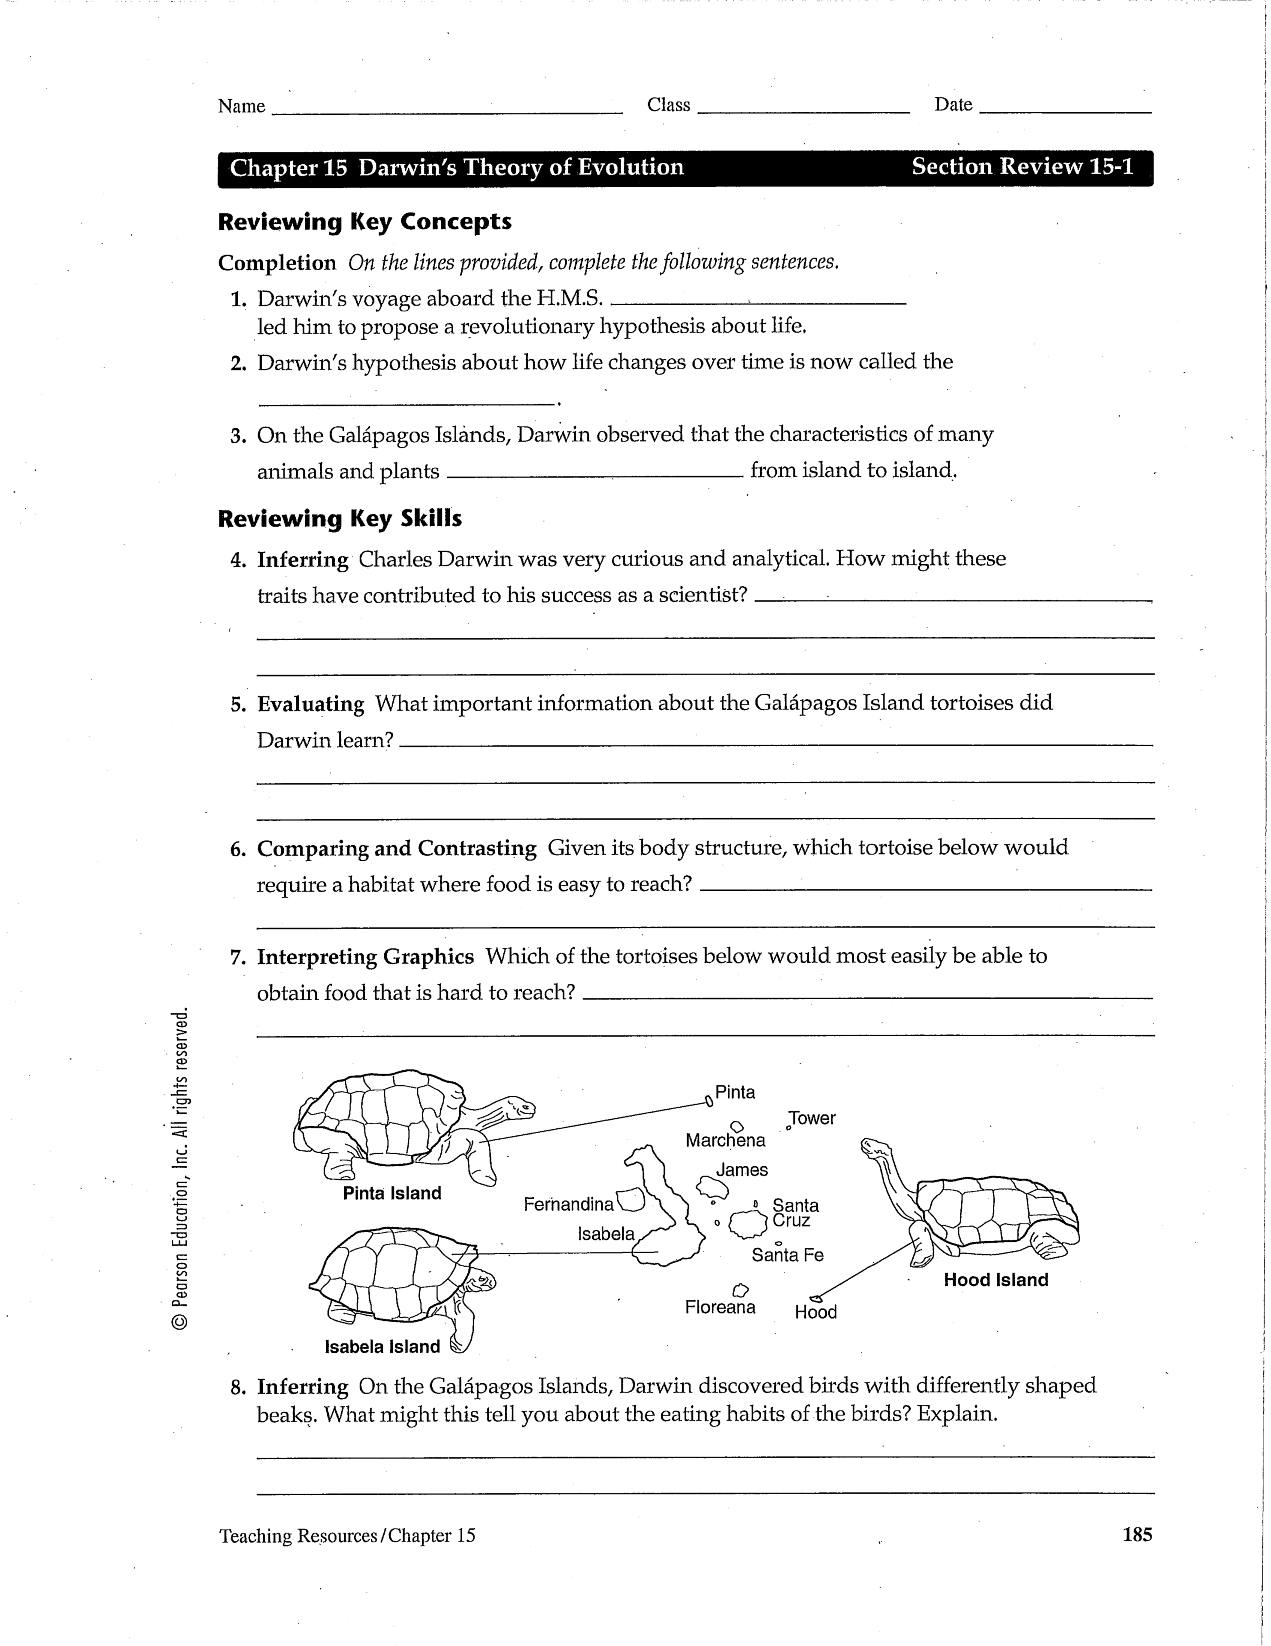 anatomy coloring book chapter 13 answers 15 best images of anatomy and physiology worksheet packets answers coloring book anatomy 13 chapter